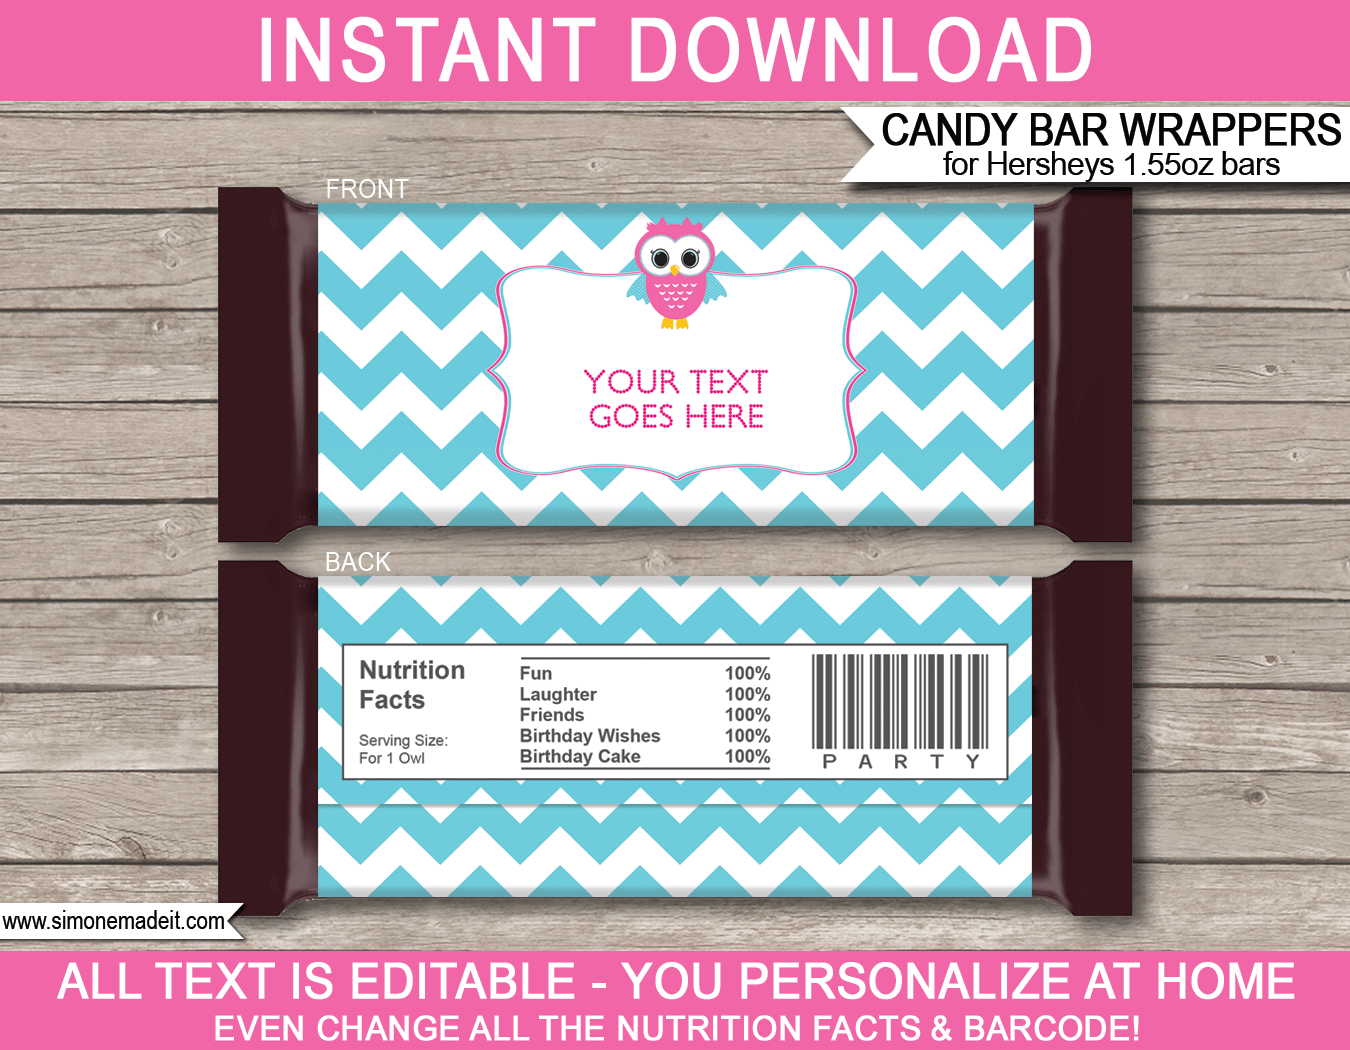 custom candy wrappers templates owl hershey candy bar wrappers personalized candy bars